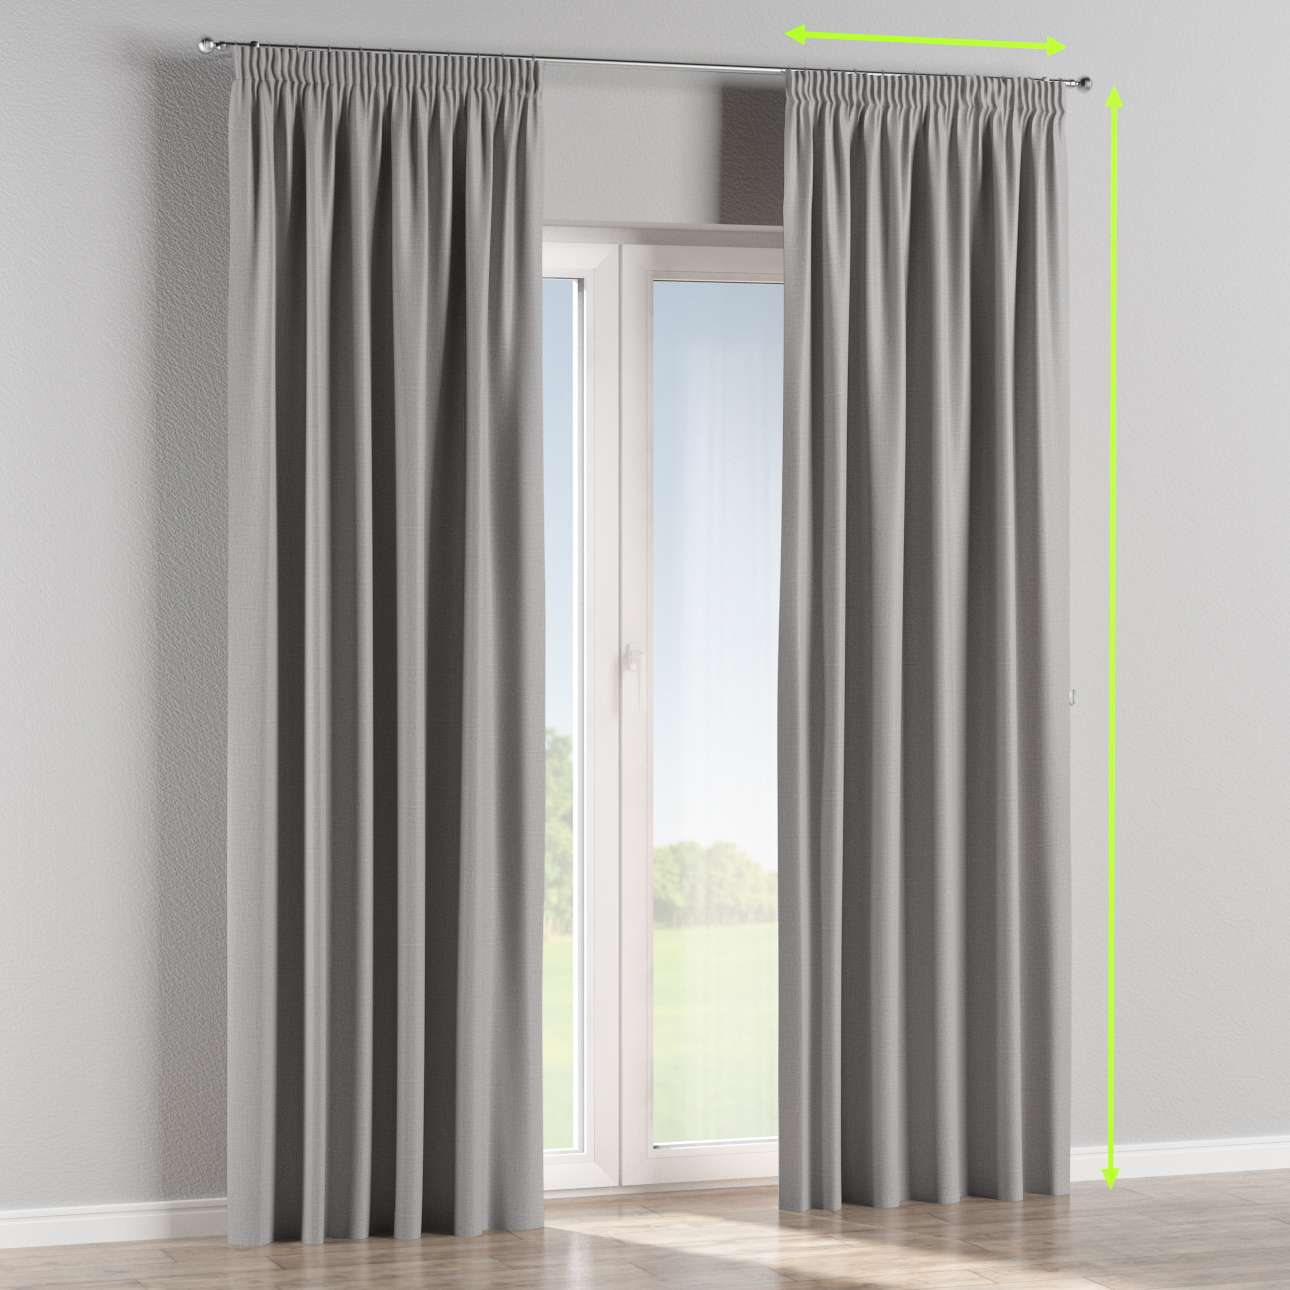 Pencil pleat curtain in collection Blackout, fabric: 269-64